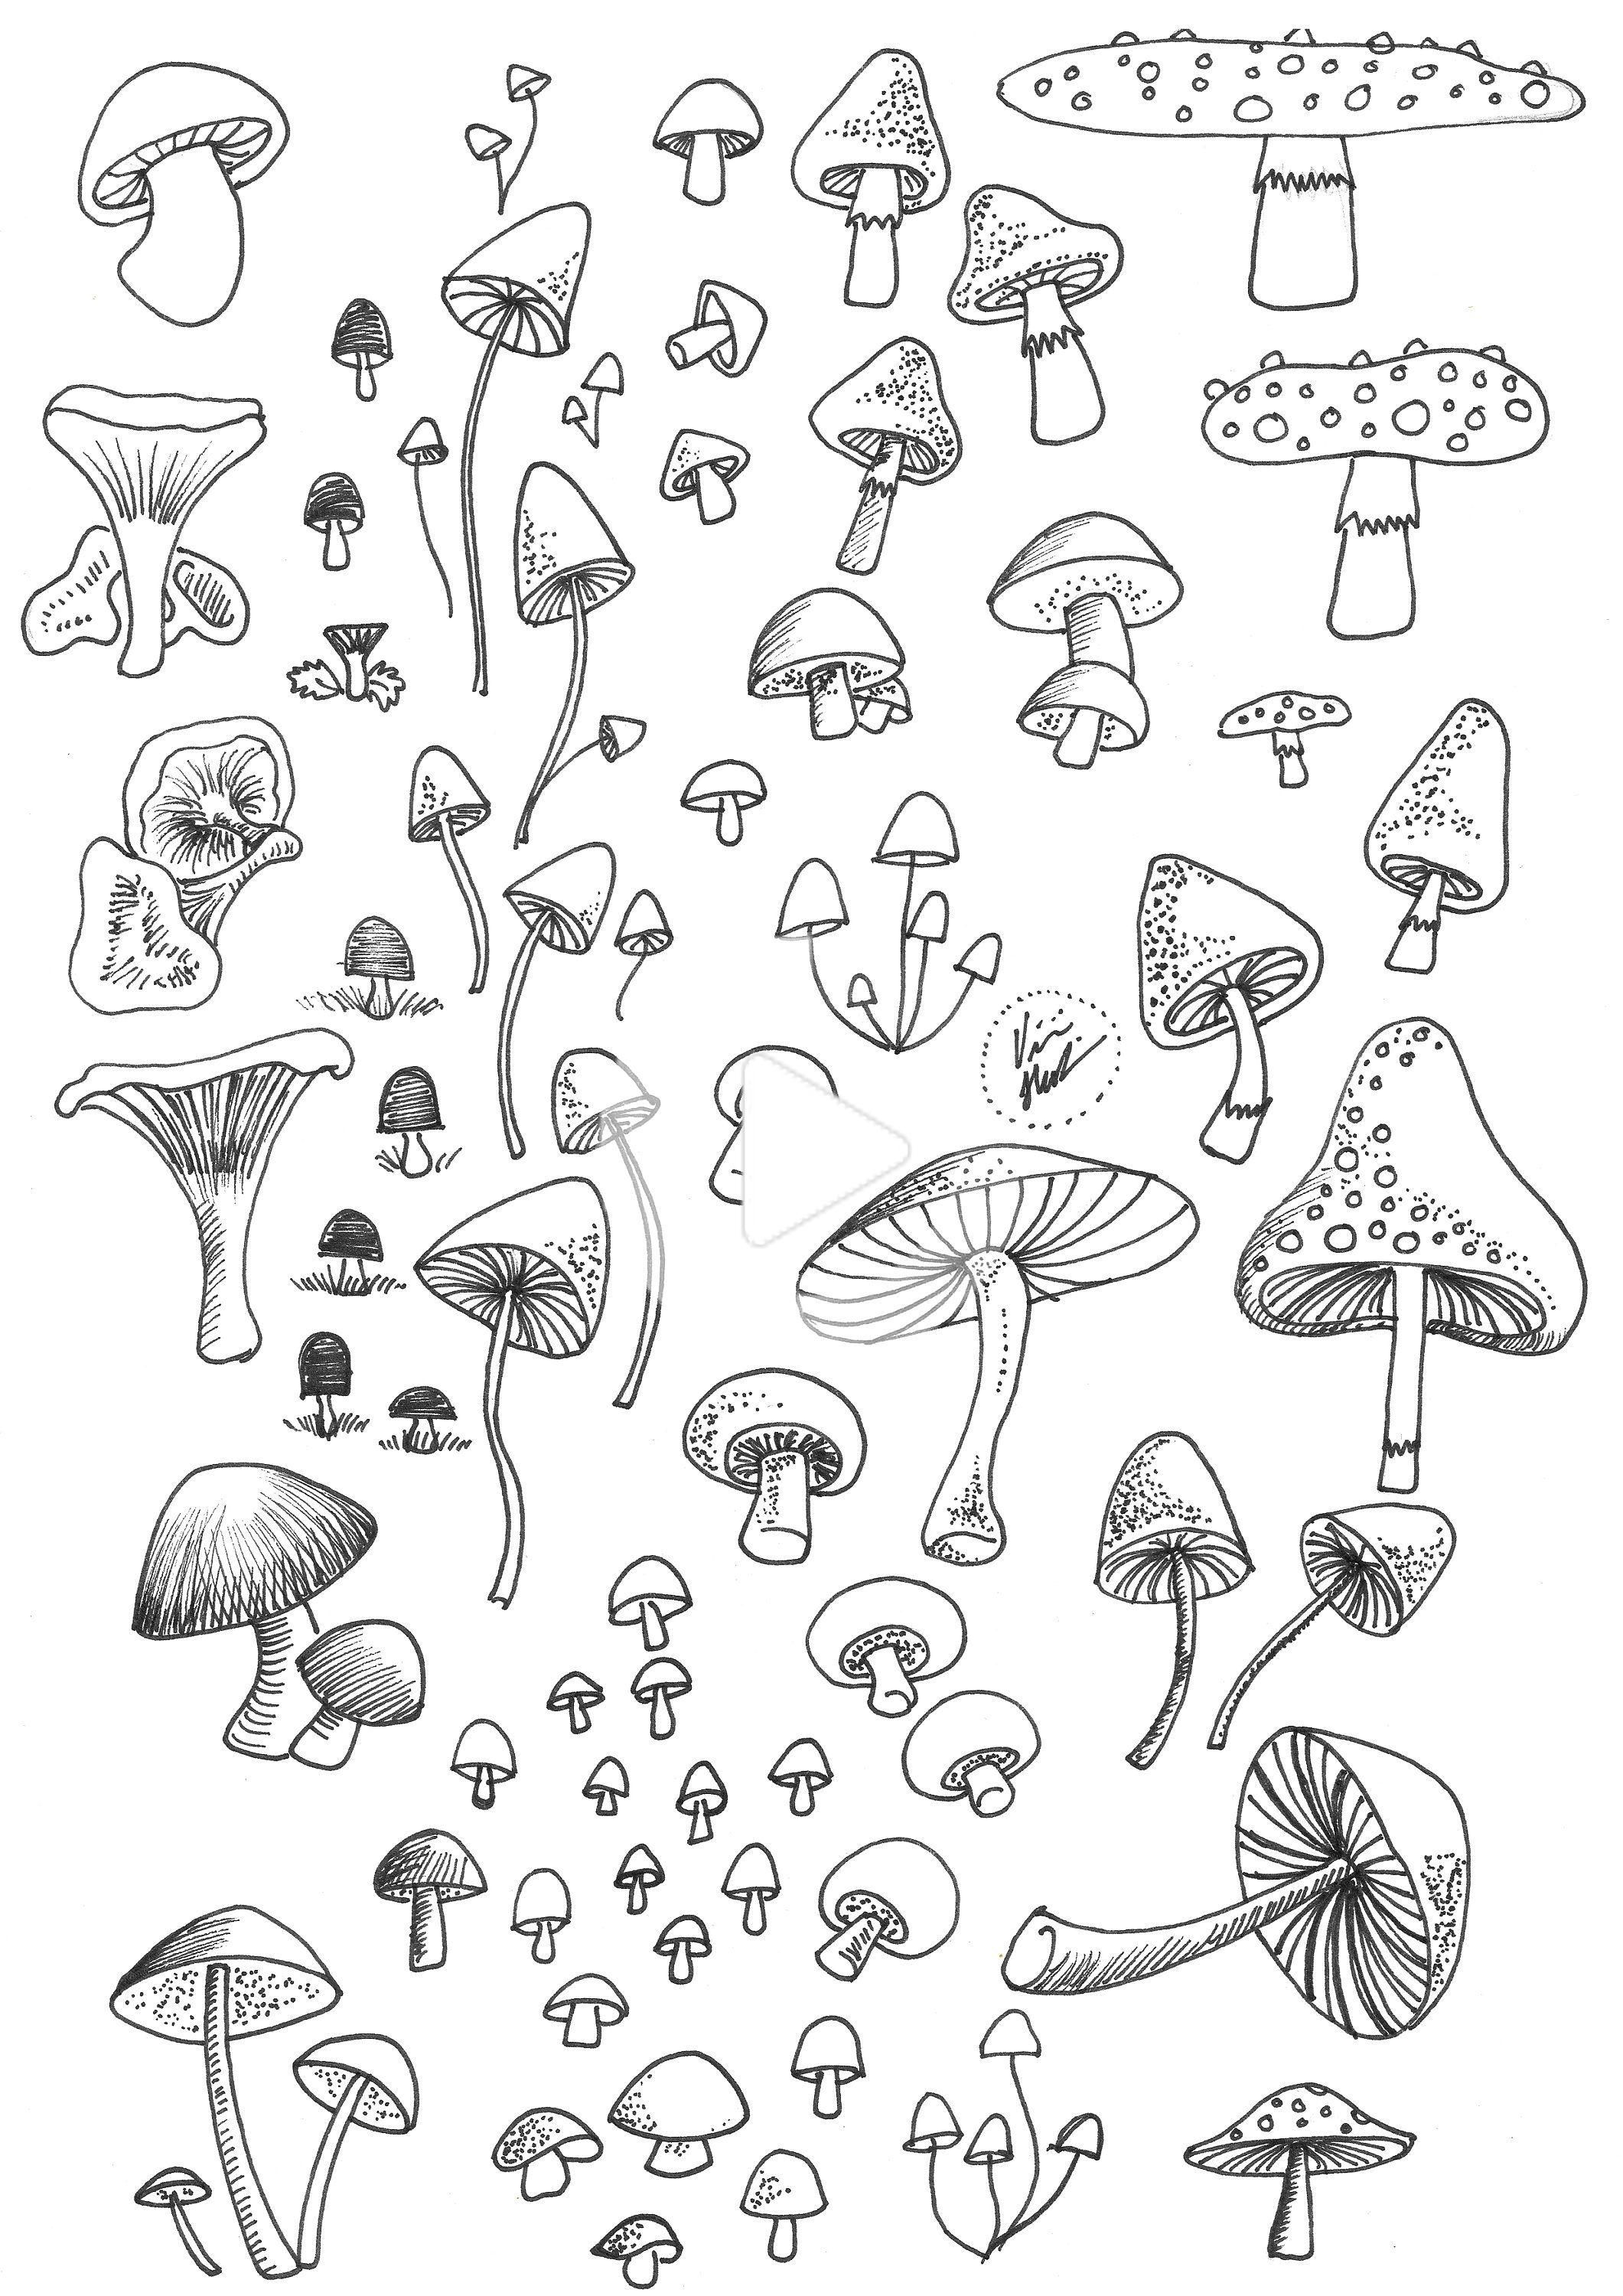 Mushrooms printable stickers for planner, bullet journal